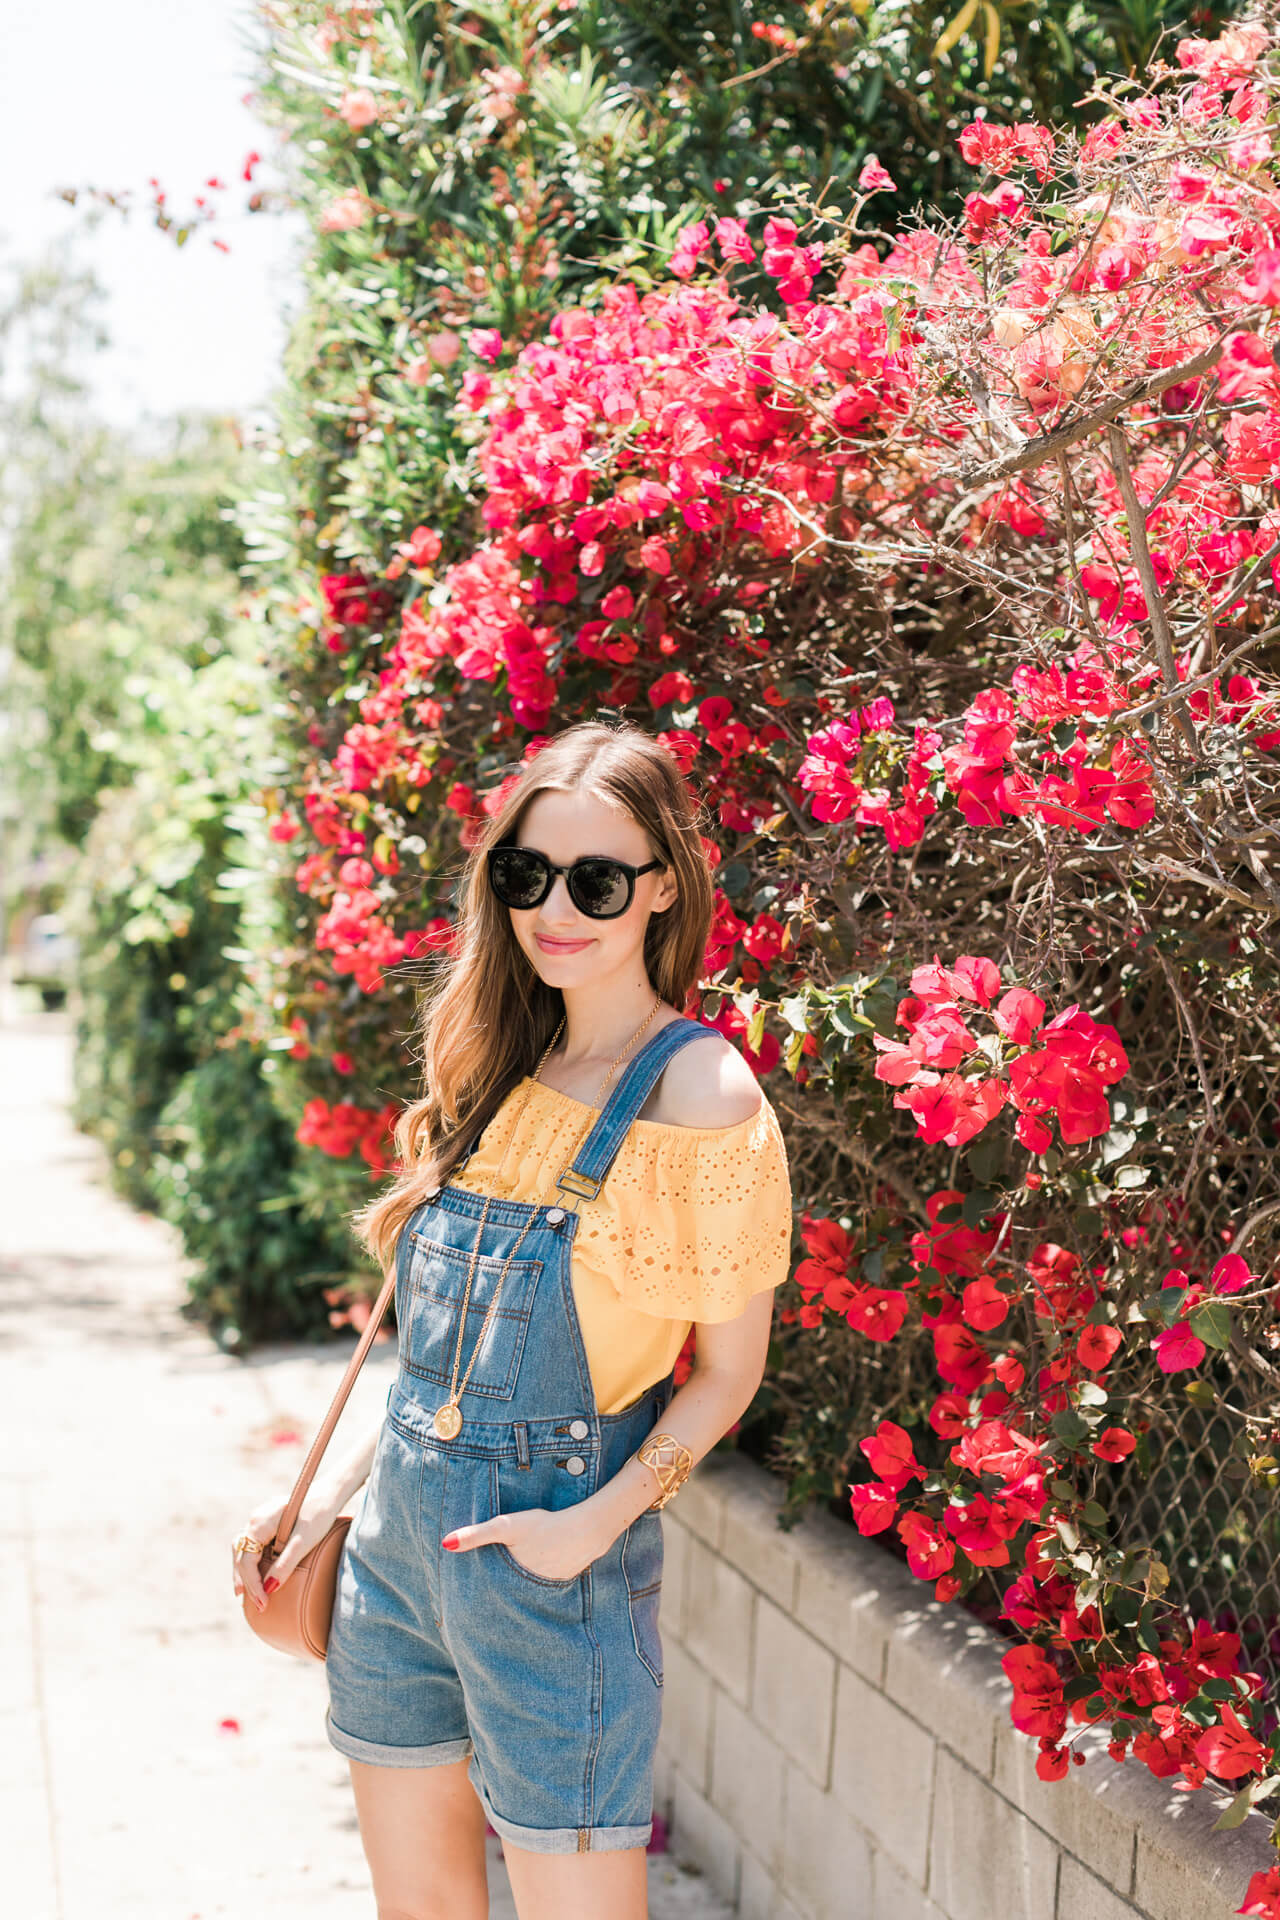 soaking up the sun today, I'm loving this bright yellow off the shoulder top - M Loves M @marmar